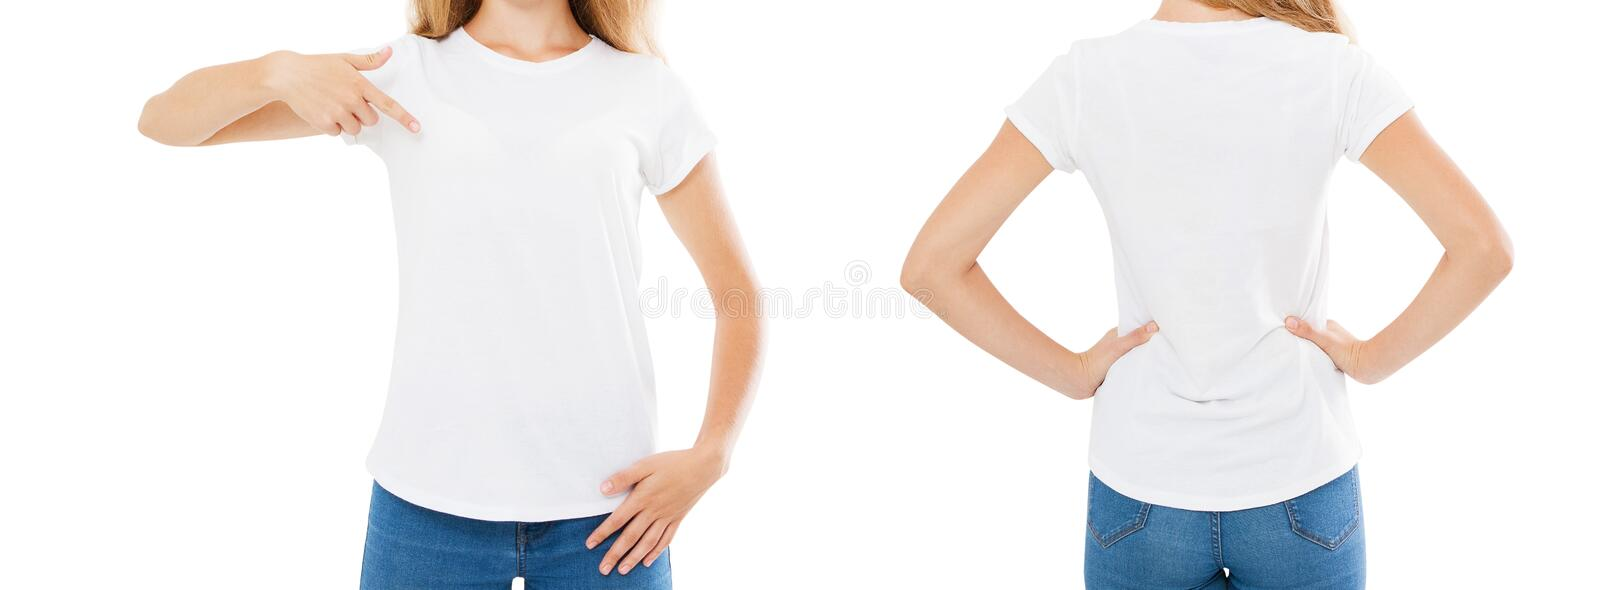 Woman pointed on t shirt isolated on white background,mock up,cropped image.  stock image